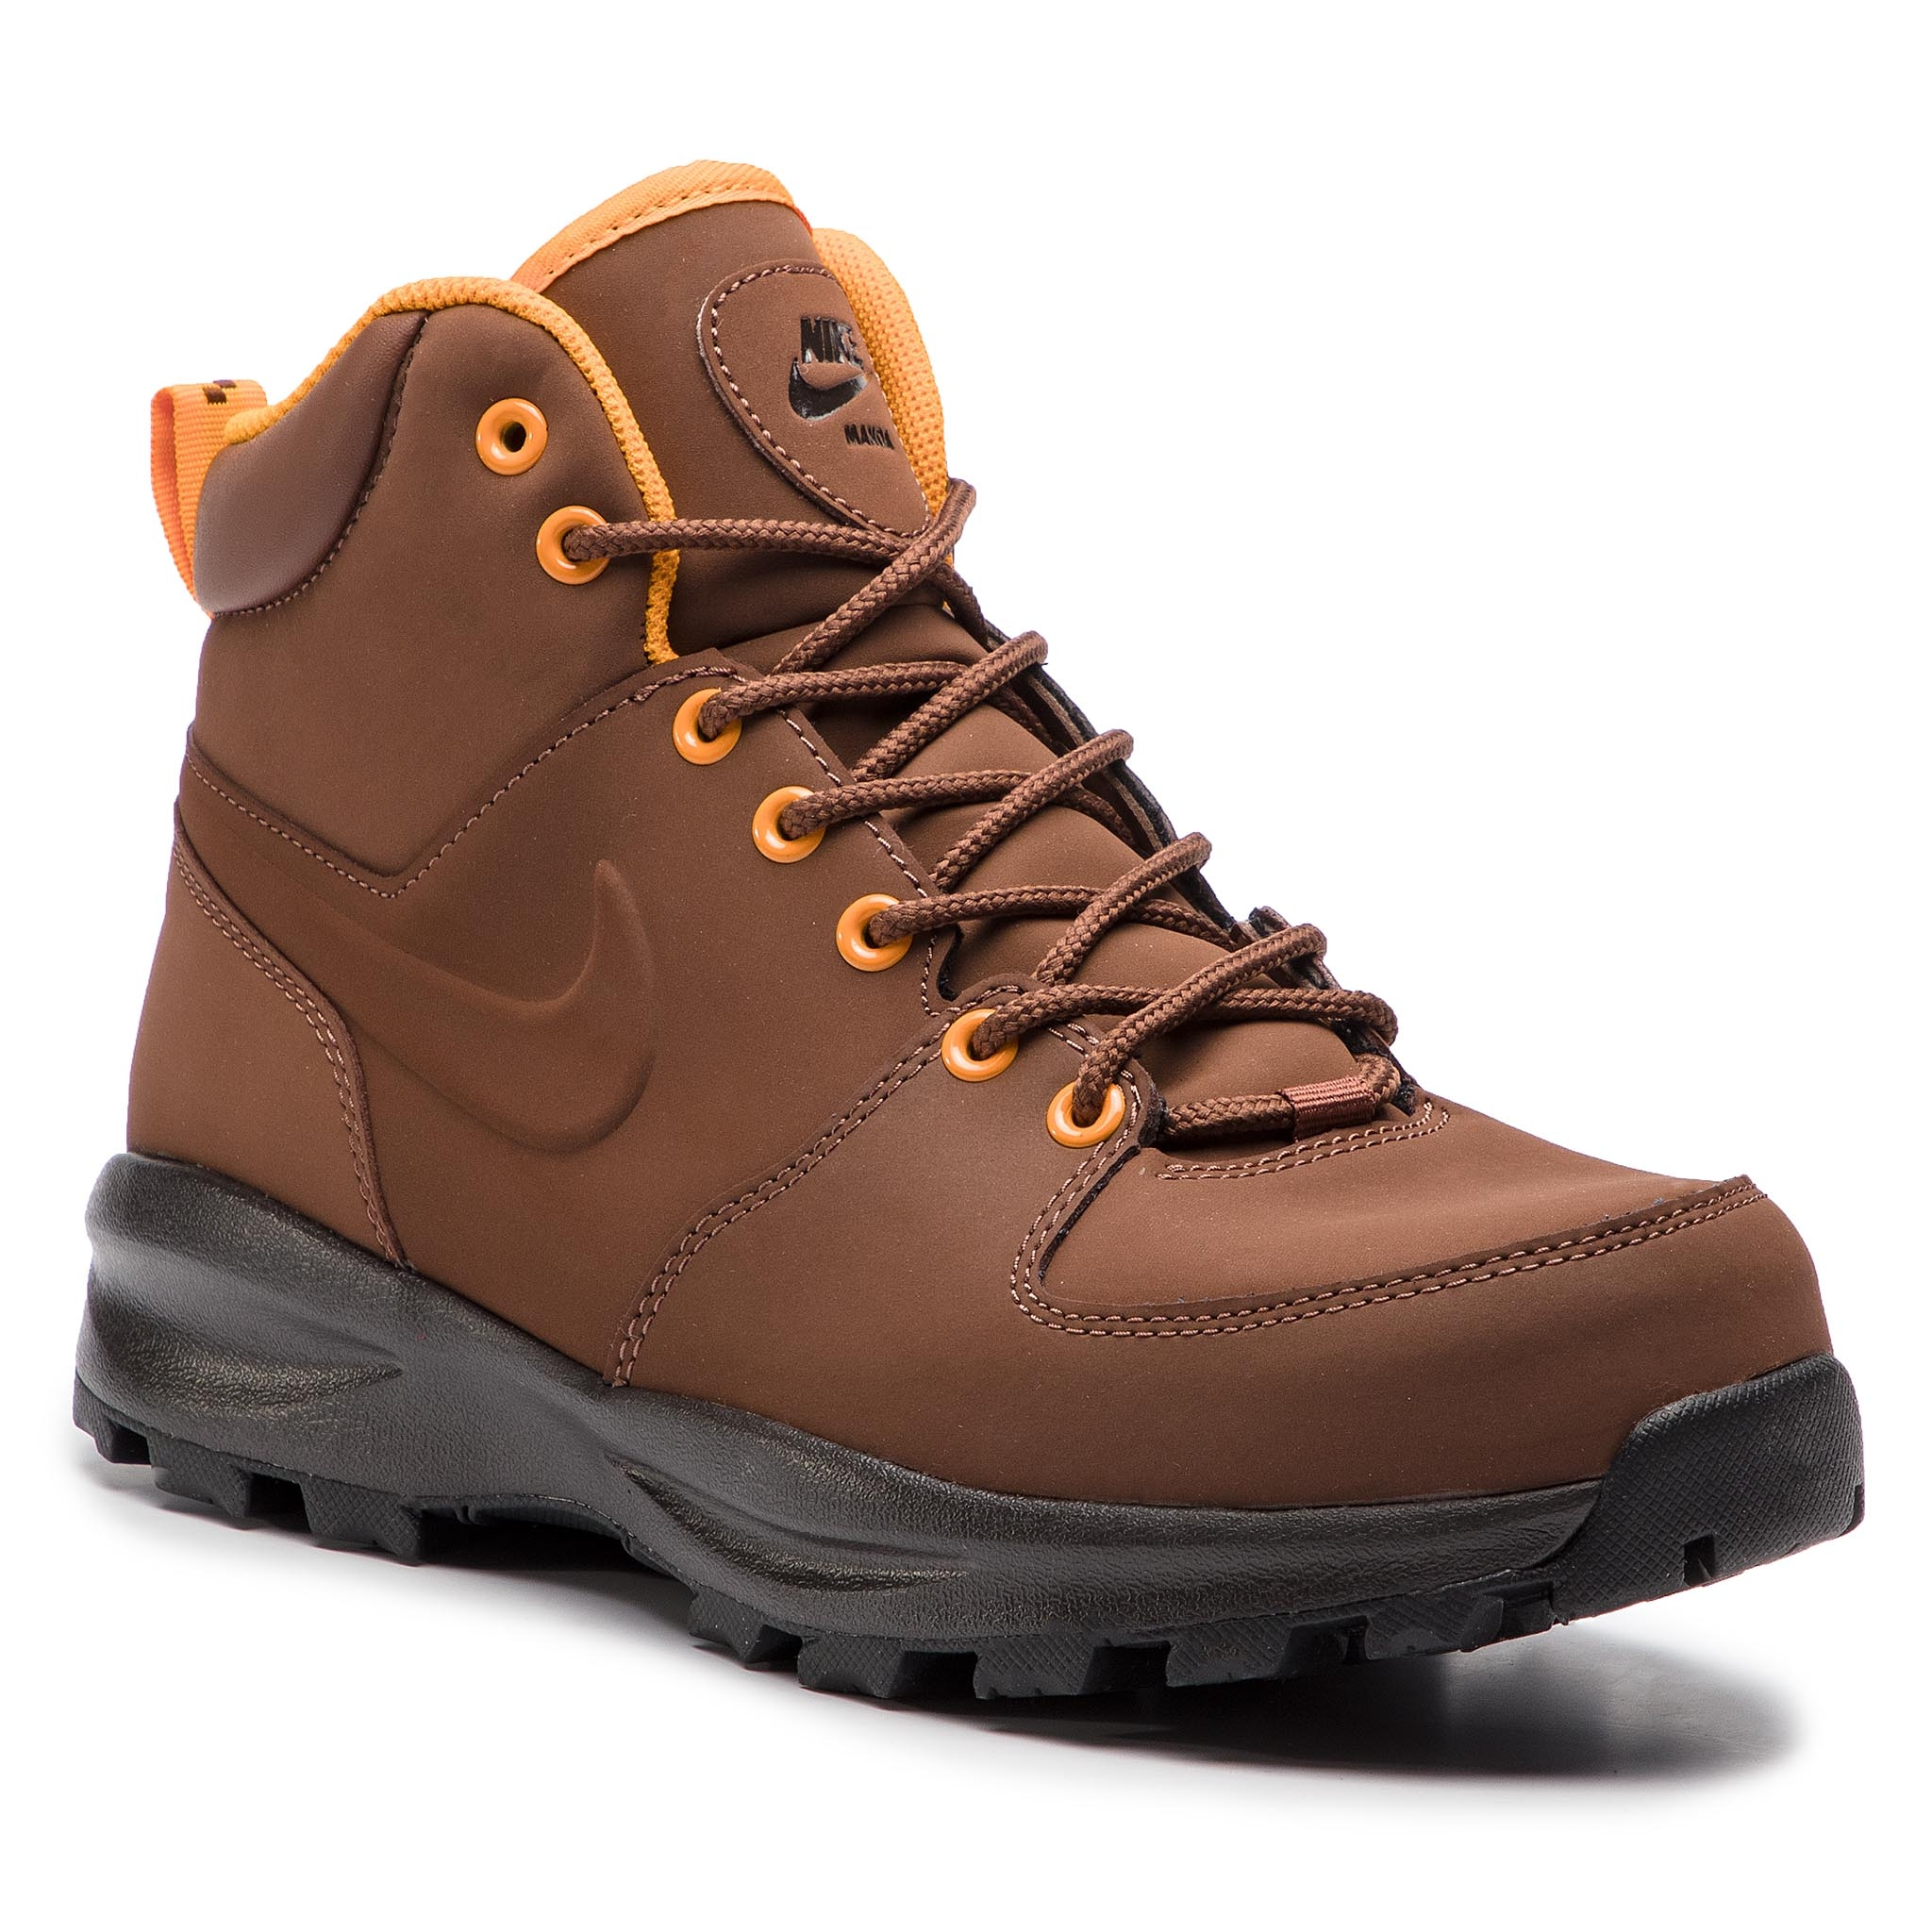 Batai NIKE - Manoa Leather 454350 203 Fauna Brown/Fauna Brown